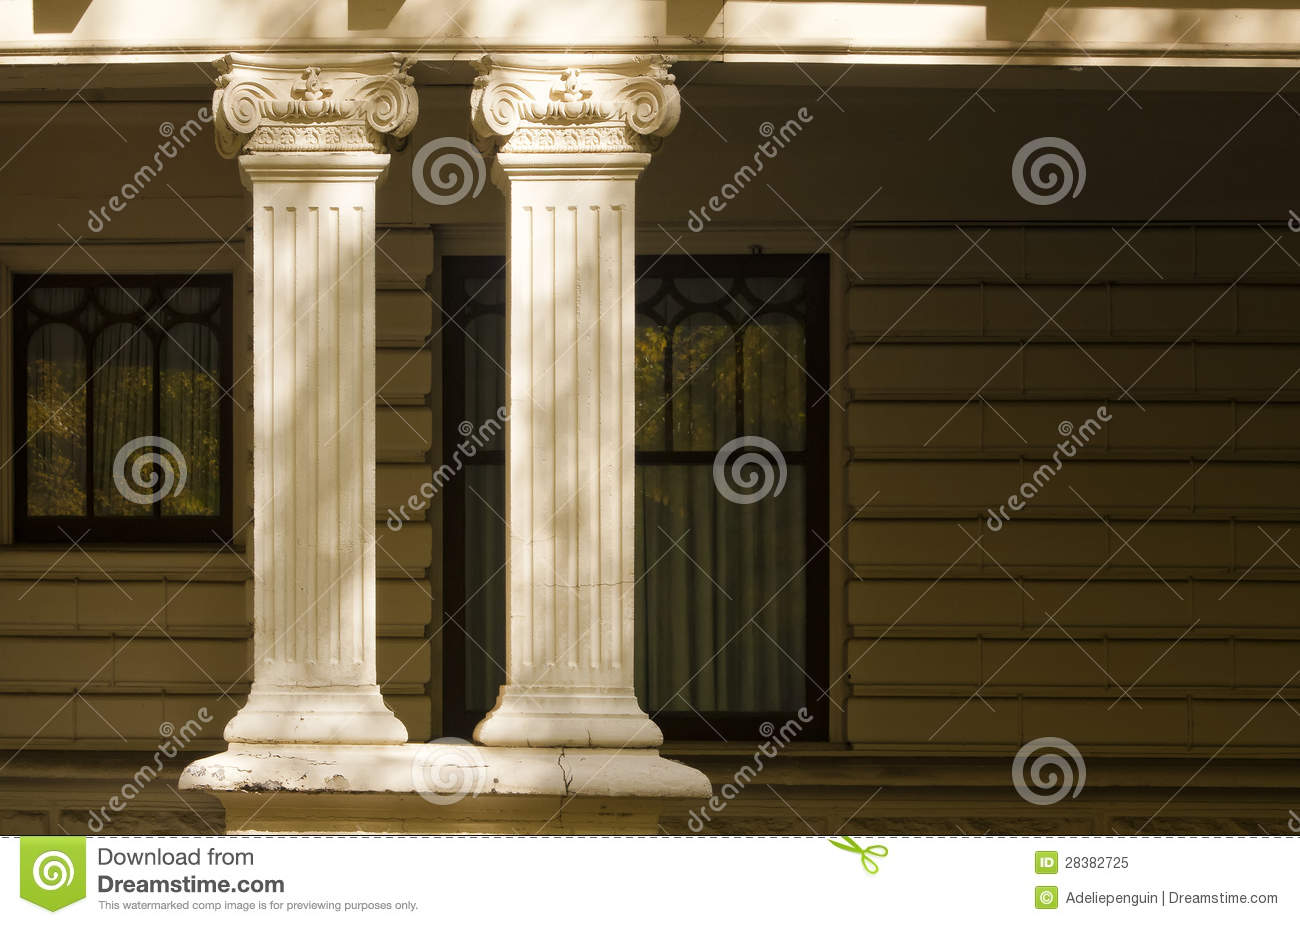 Decorative Columns Residential Architecture Stock Image